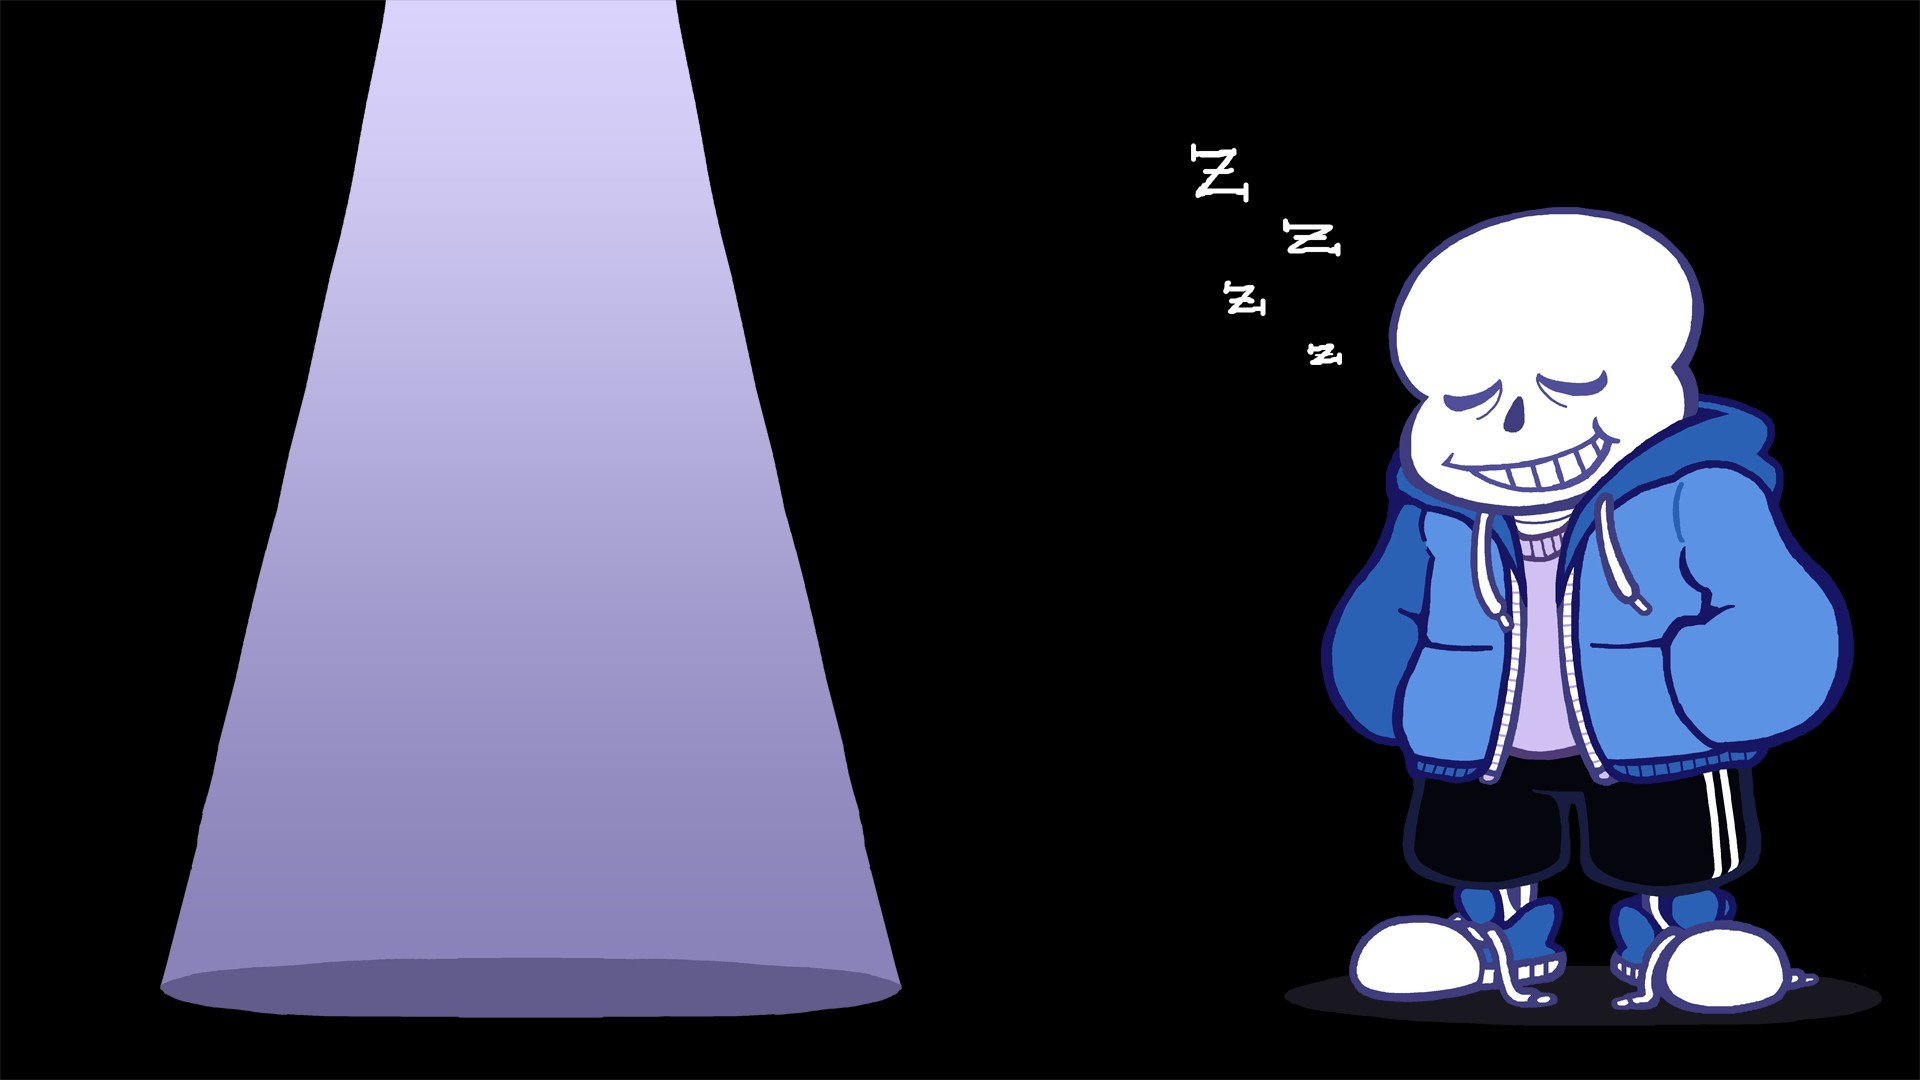 1920x1080  Undertale Wallpaper Thread! Â« Undertale Â« Forum Â« Starmen.Net